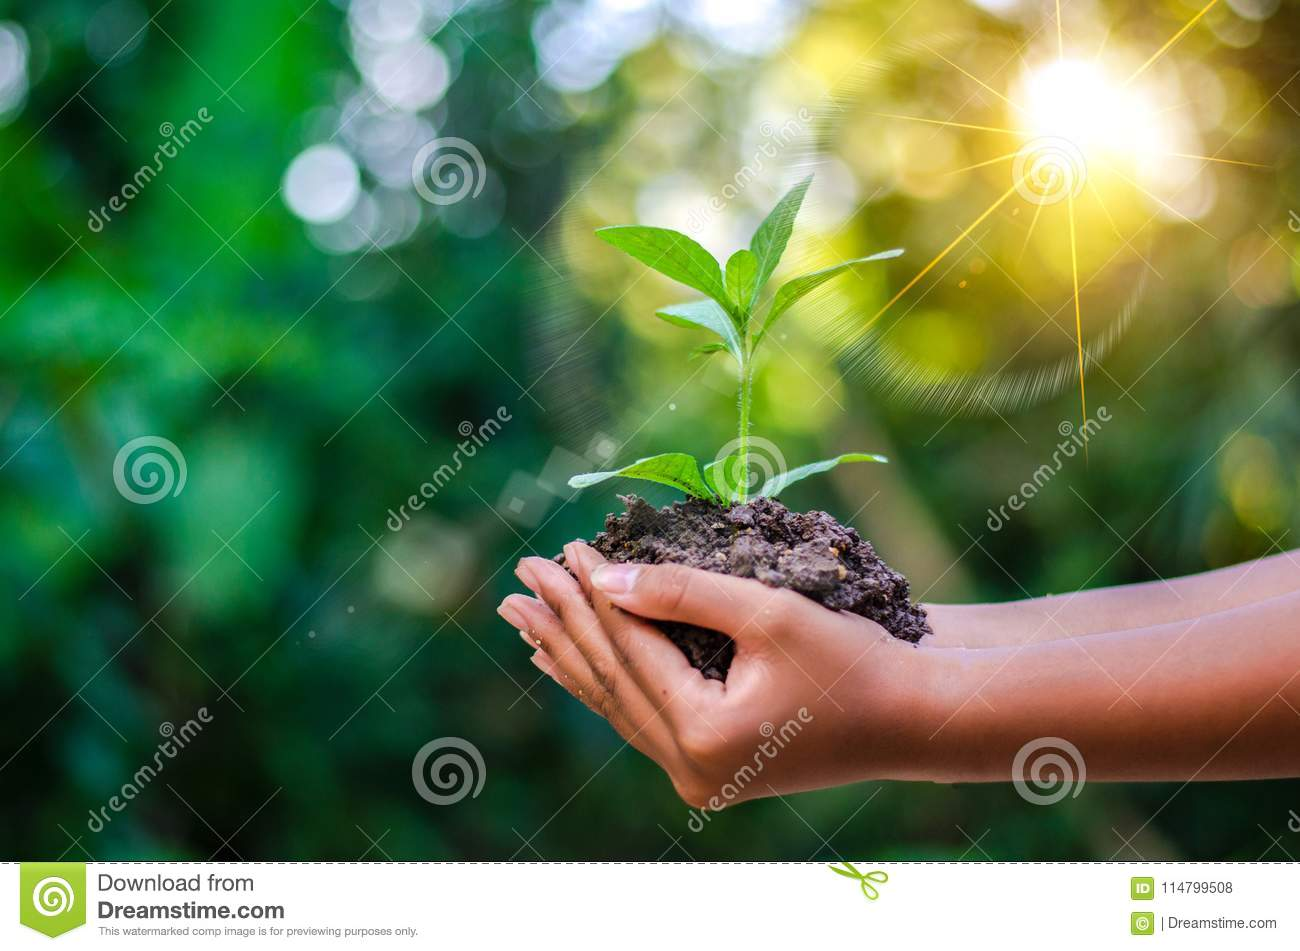 Earth Day In the hands of trees growing seedlings. Bokeh green Background Female hand holding tree on nature field grass Forest co